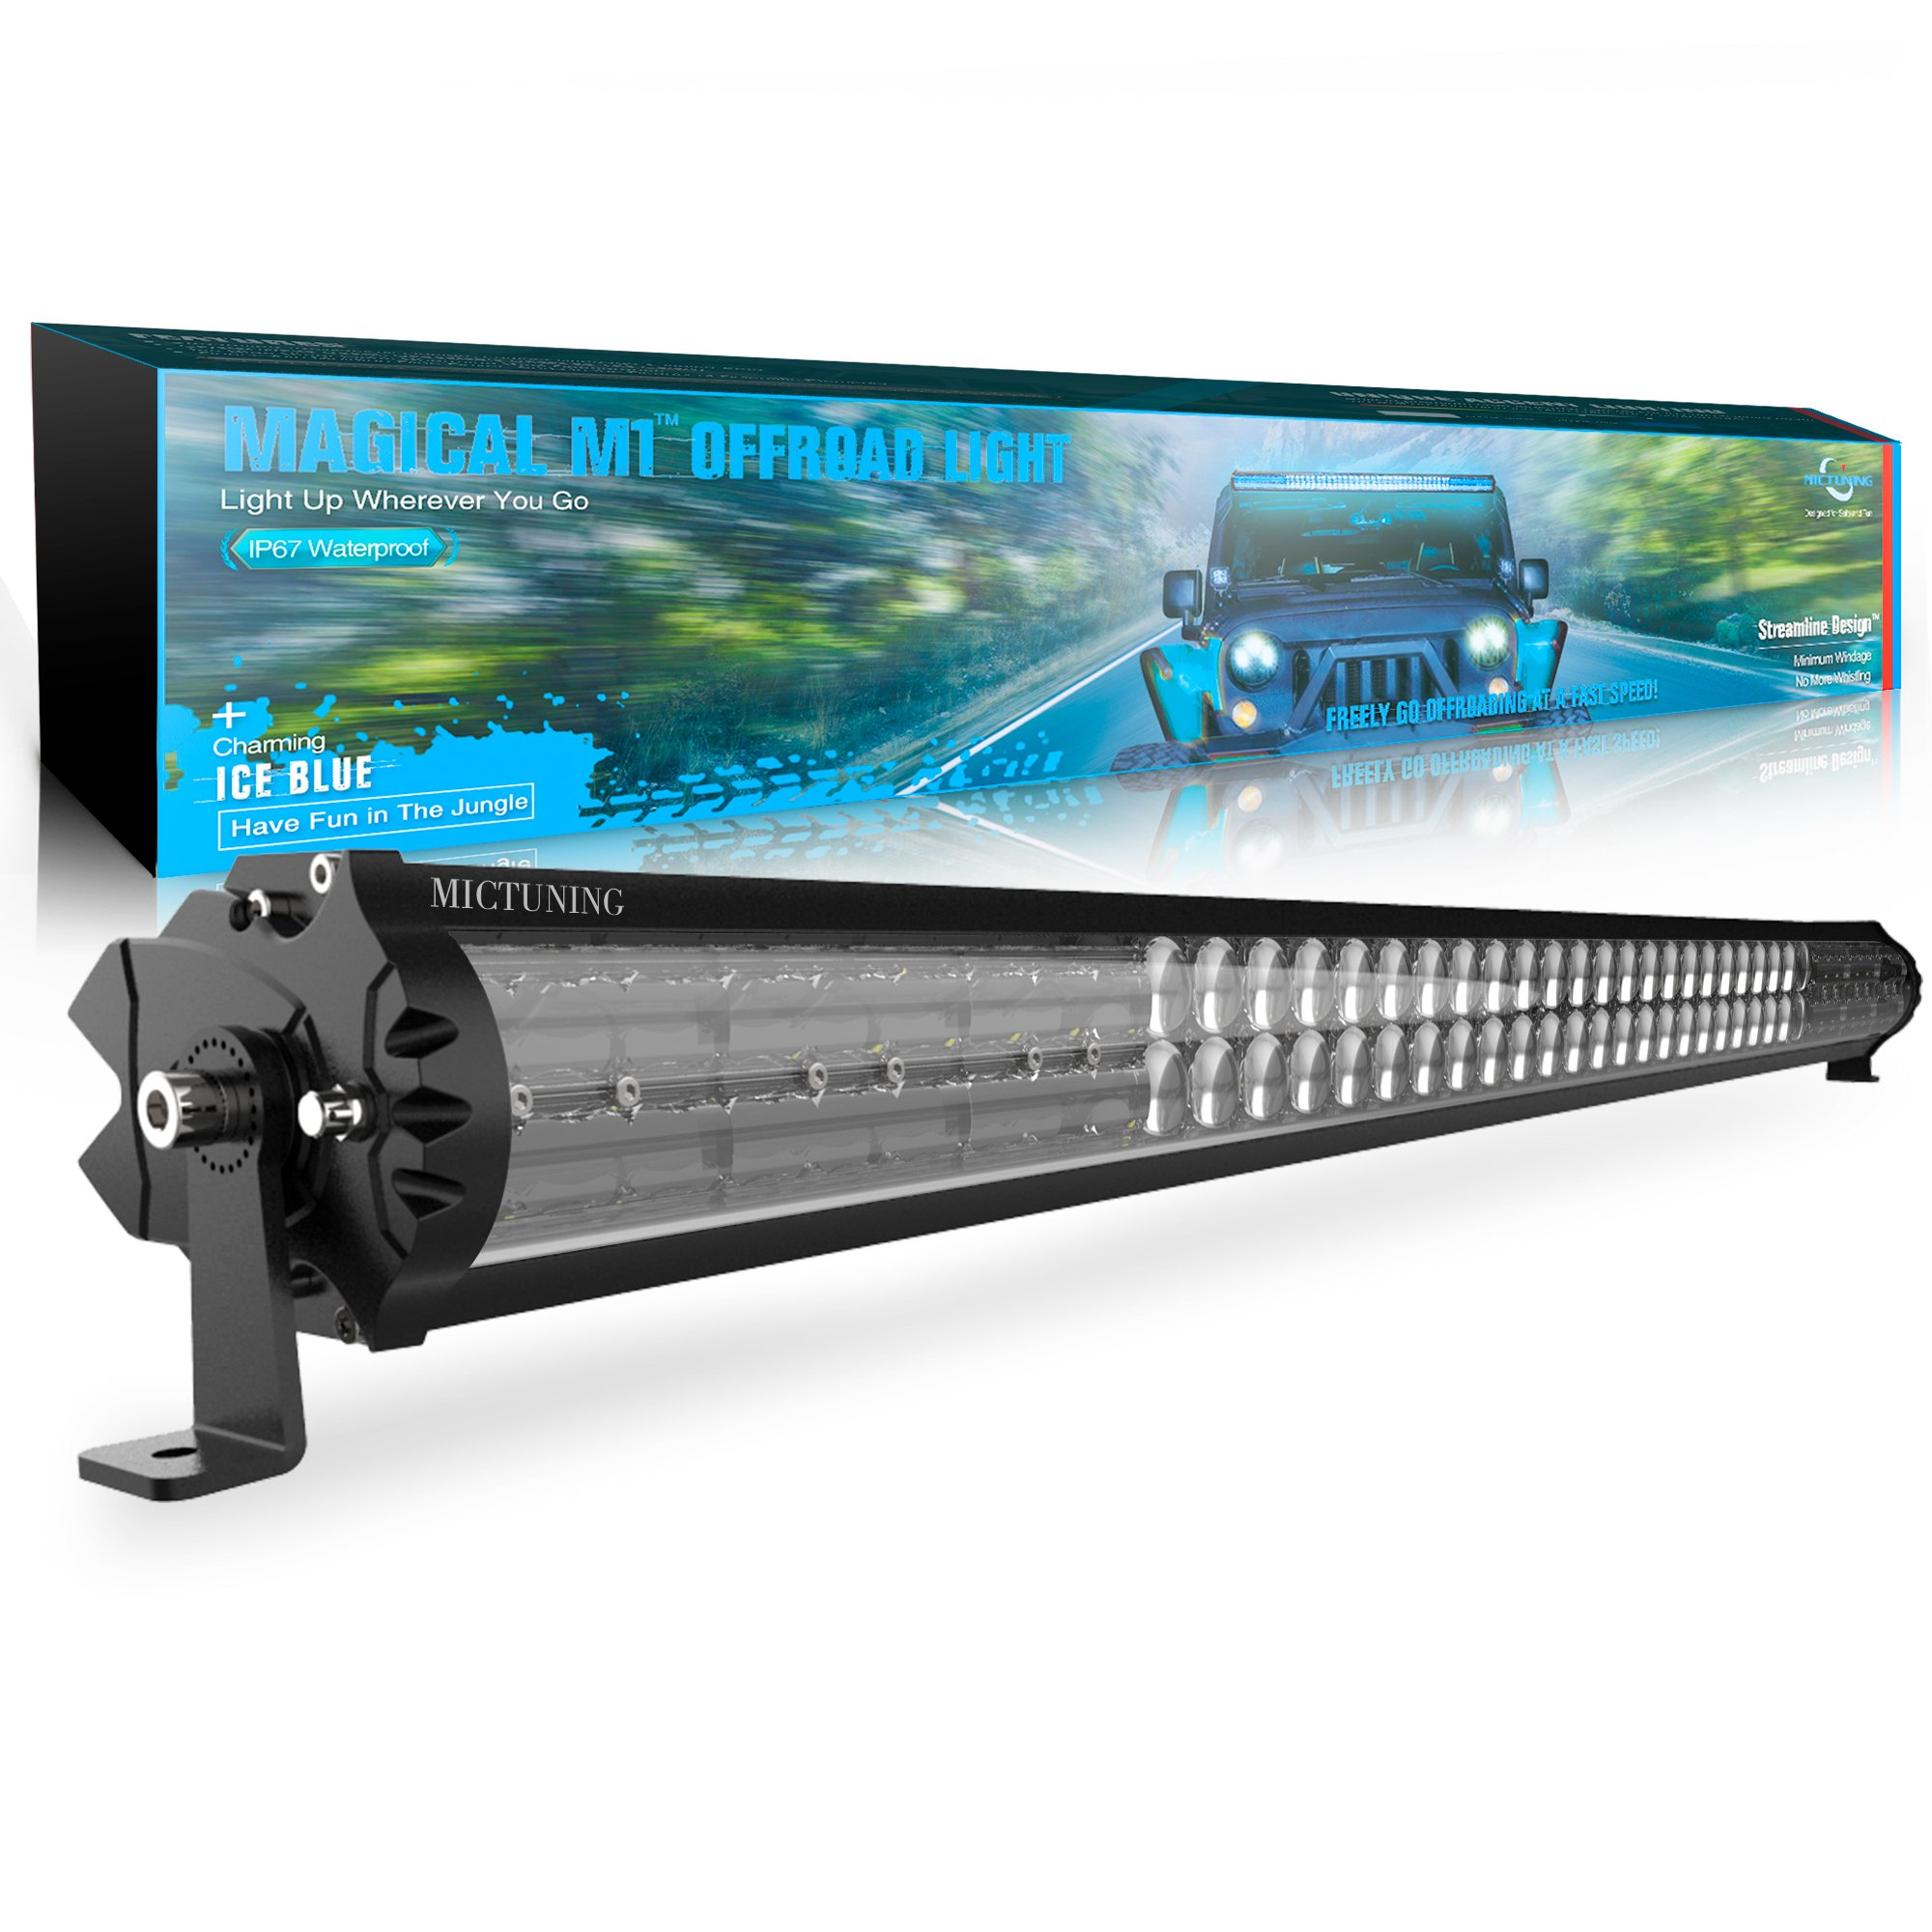 MICTUNING Magical M1 42 Inch Aerodynamic LED Light Bar with IceBlue Accent Light - Exclusive Streamline ArcMask Design 22680lm Off Road Driving Work Lamp, 2 Years Warranty by MICTUNING